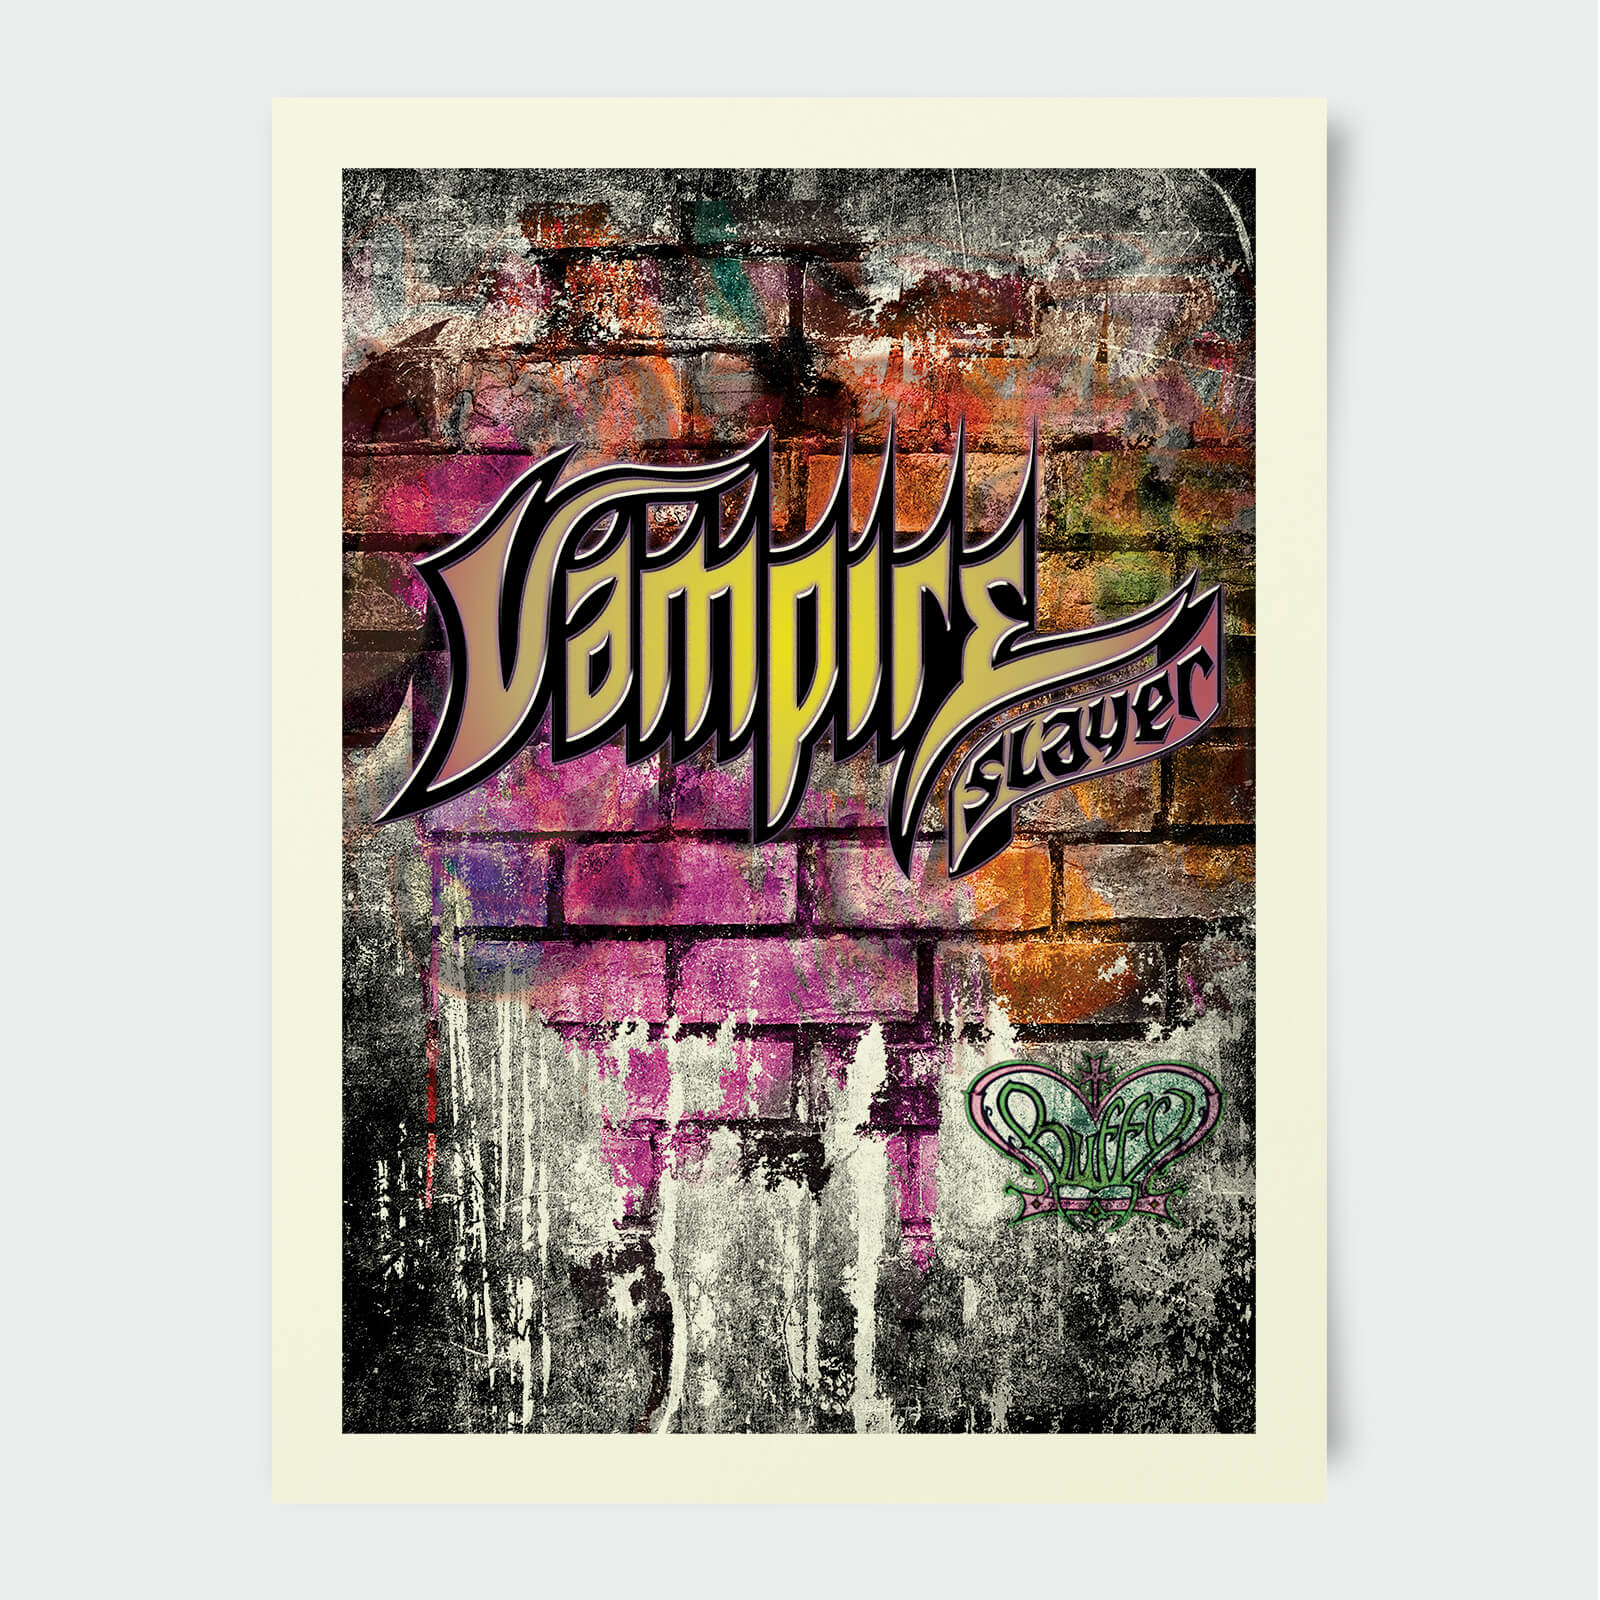 Buffy The Vampire Slayer Vampire Slayer Graffitti 30x40cm Print